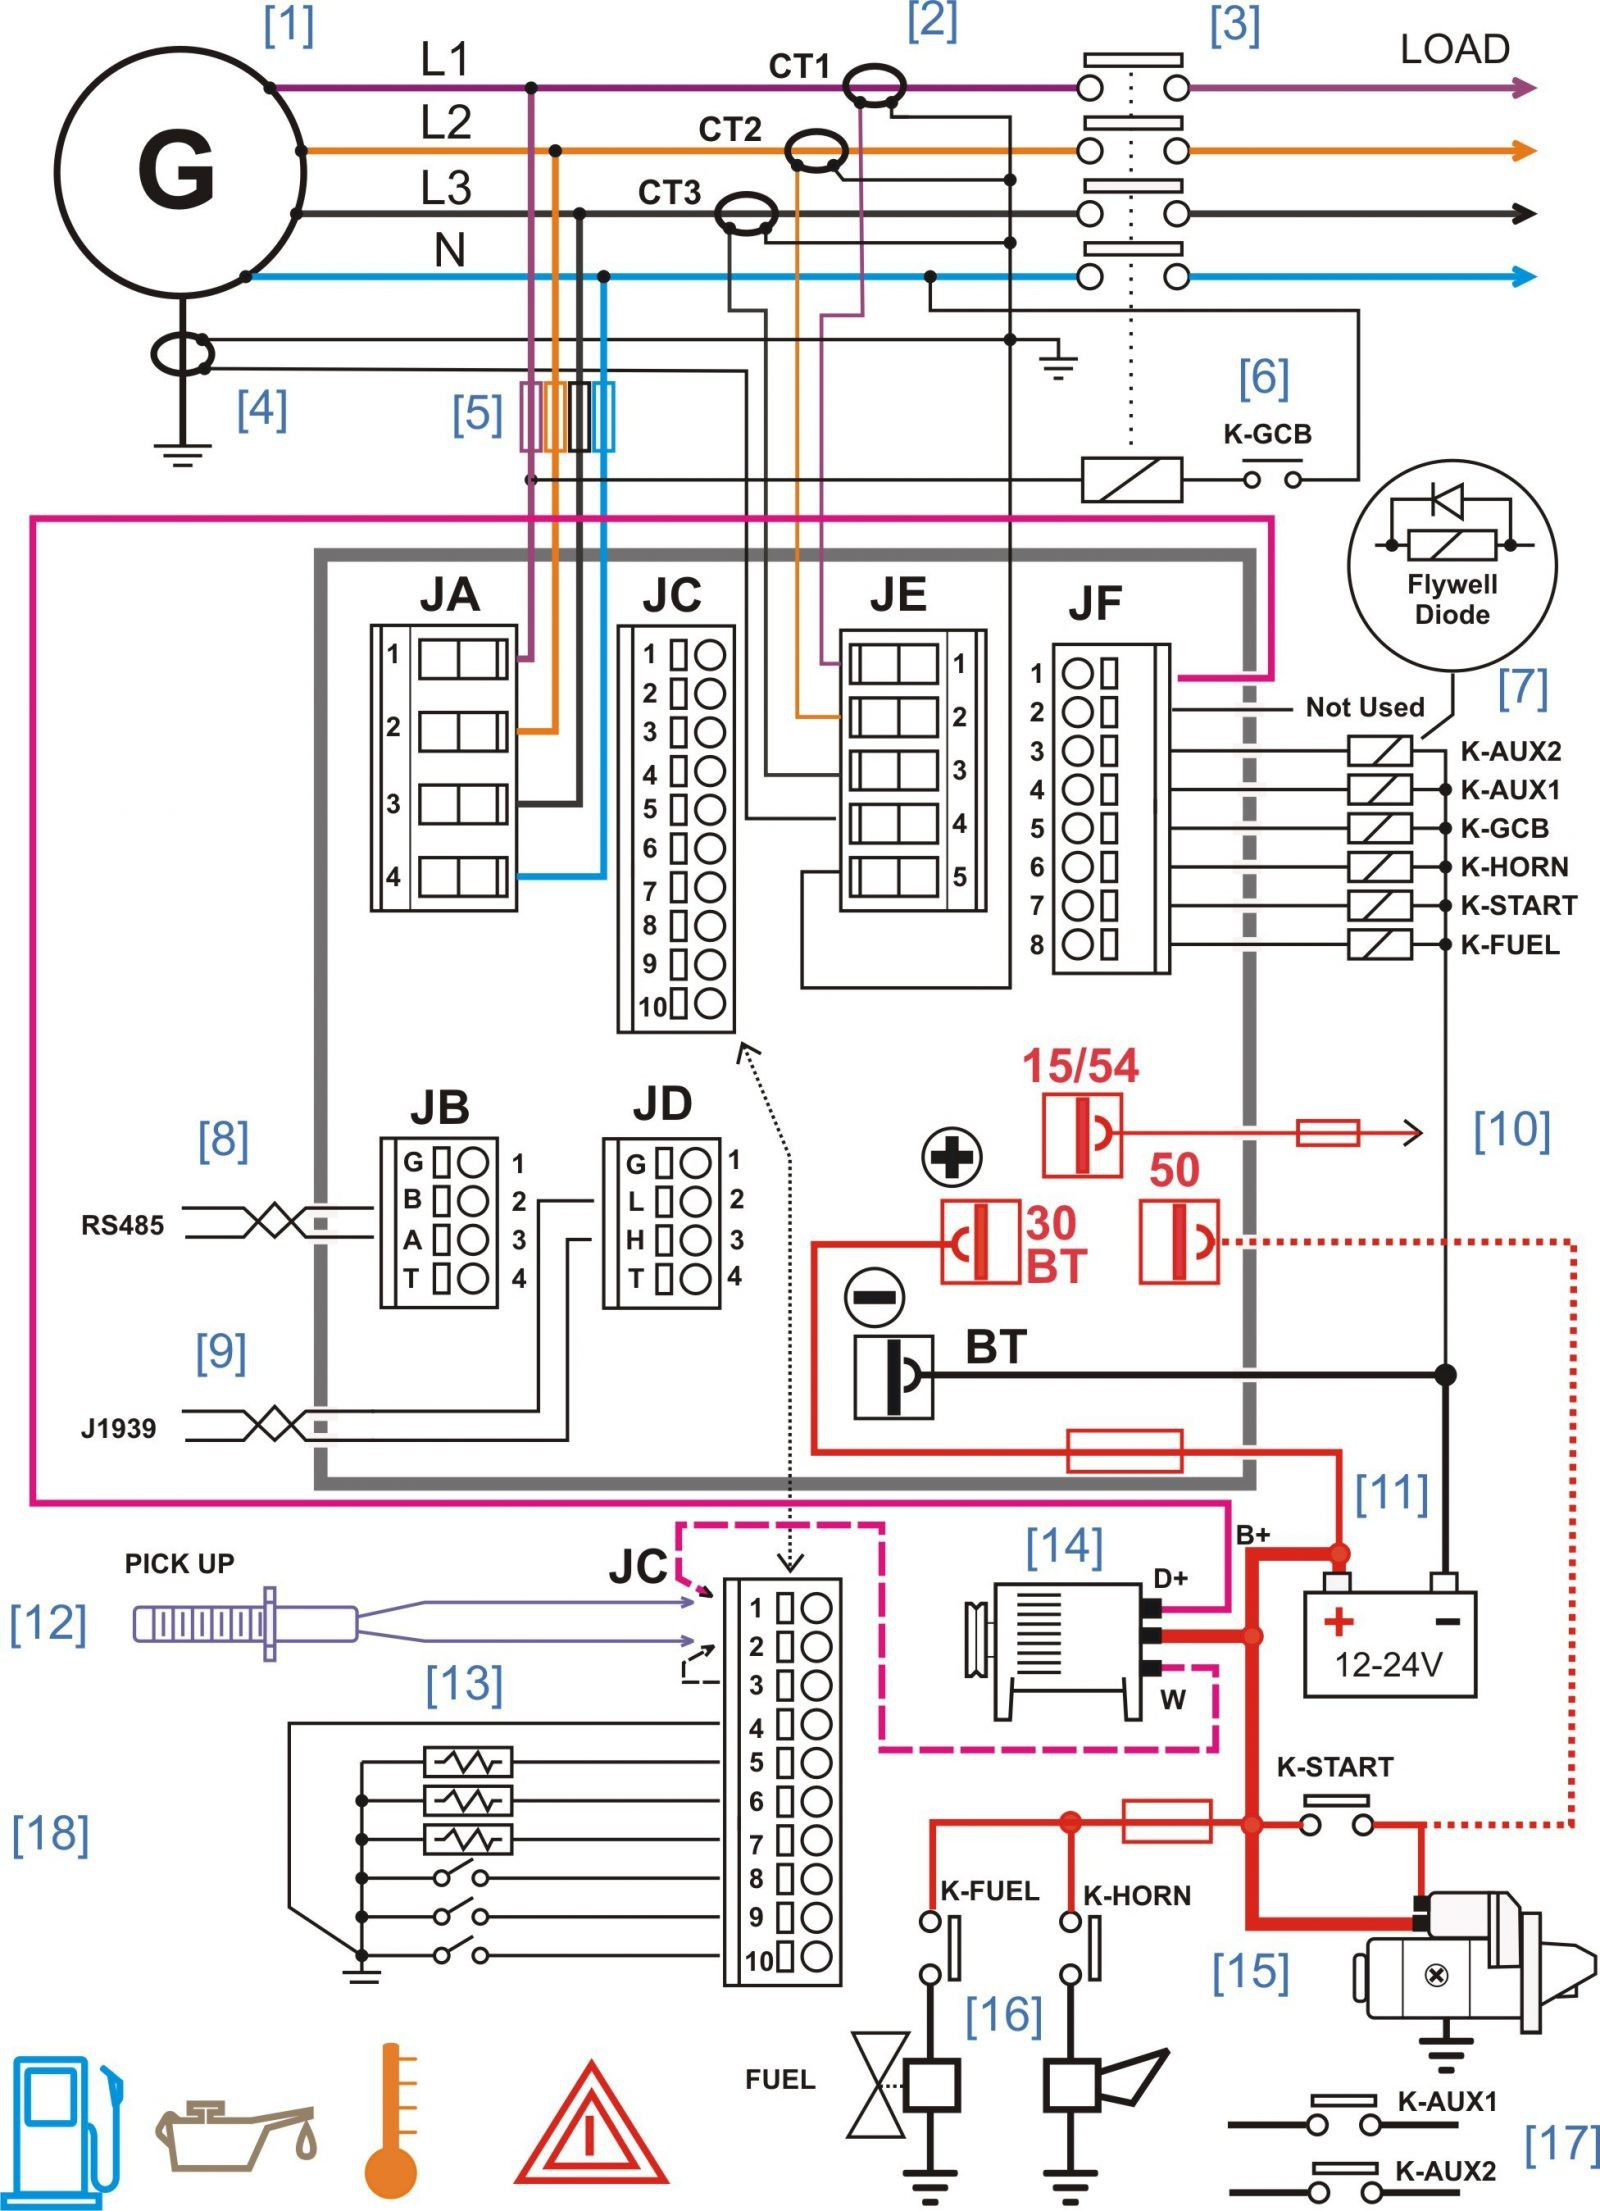 Wiring diagrams for pioneer car stereos car audio wiring diagrams wiring diagrams for pioneer car stereos radio wiring diagram unique cheap all in e android 6 related post asfbconference2016 Gallery